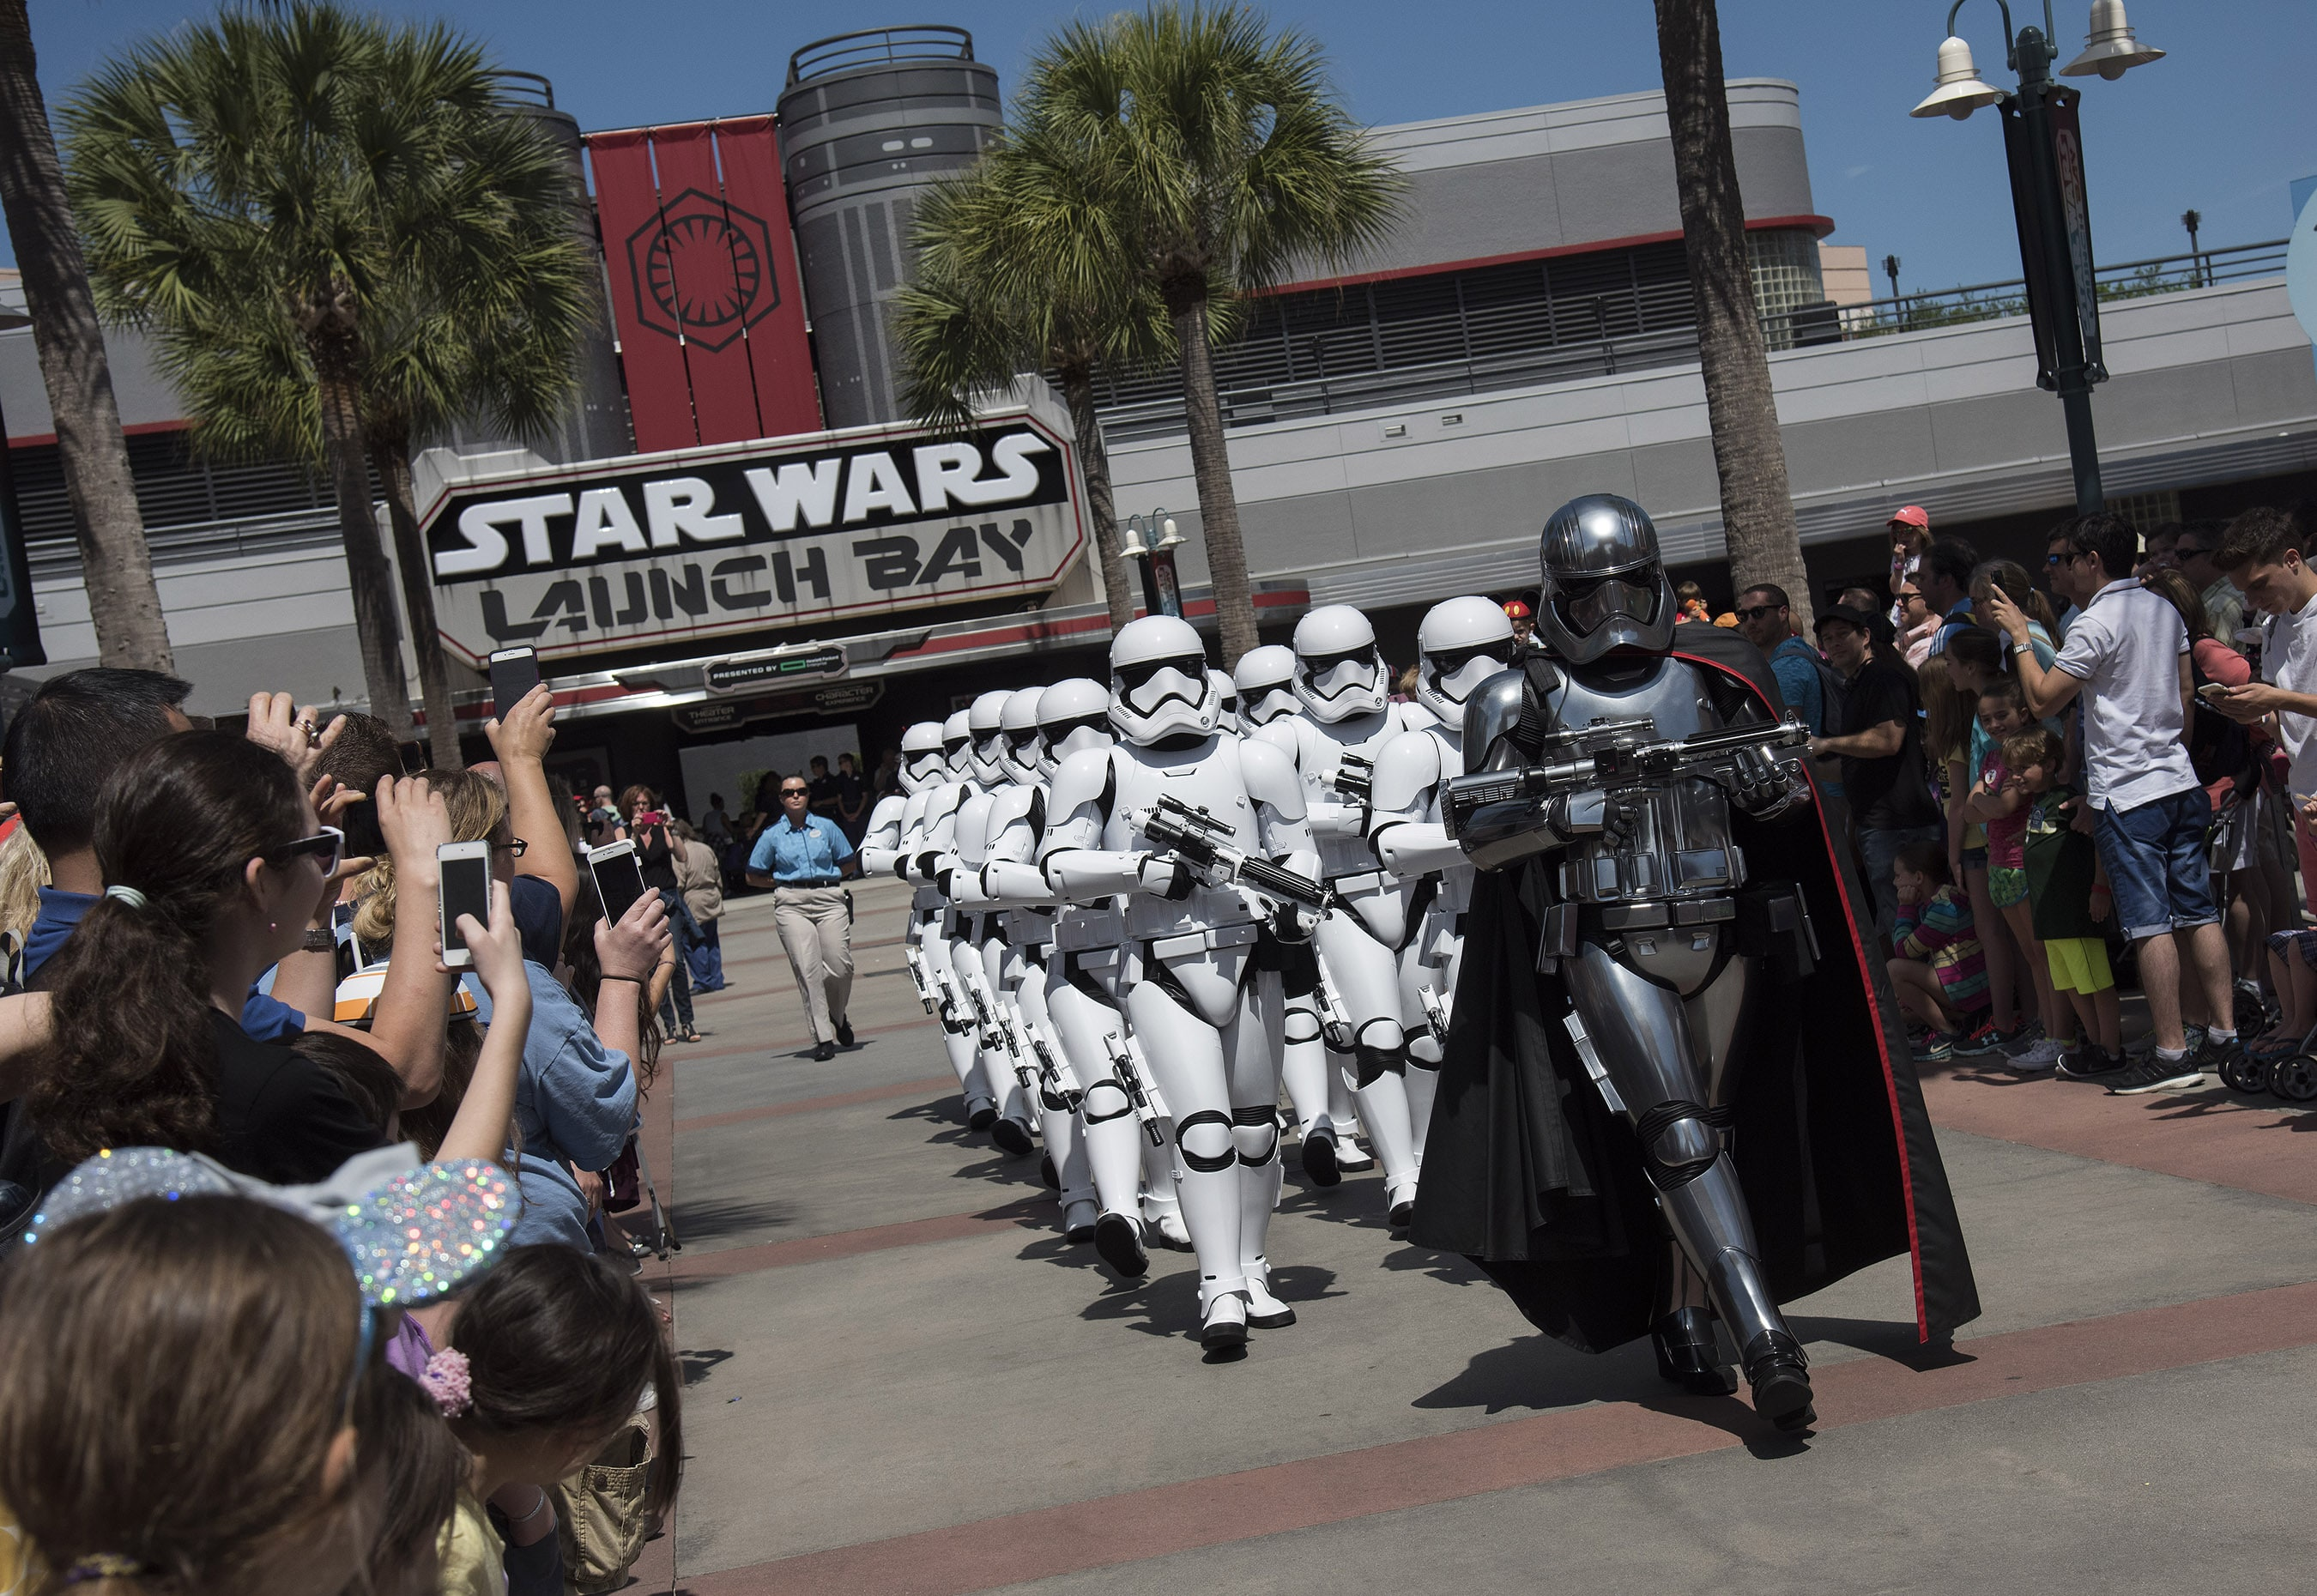 A Disney Star Wars Itinerary For Your Day At Hollywood